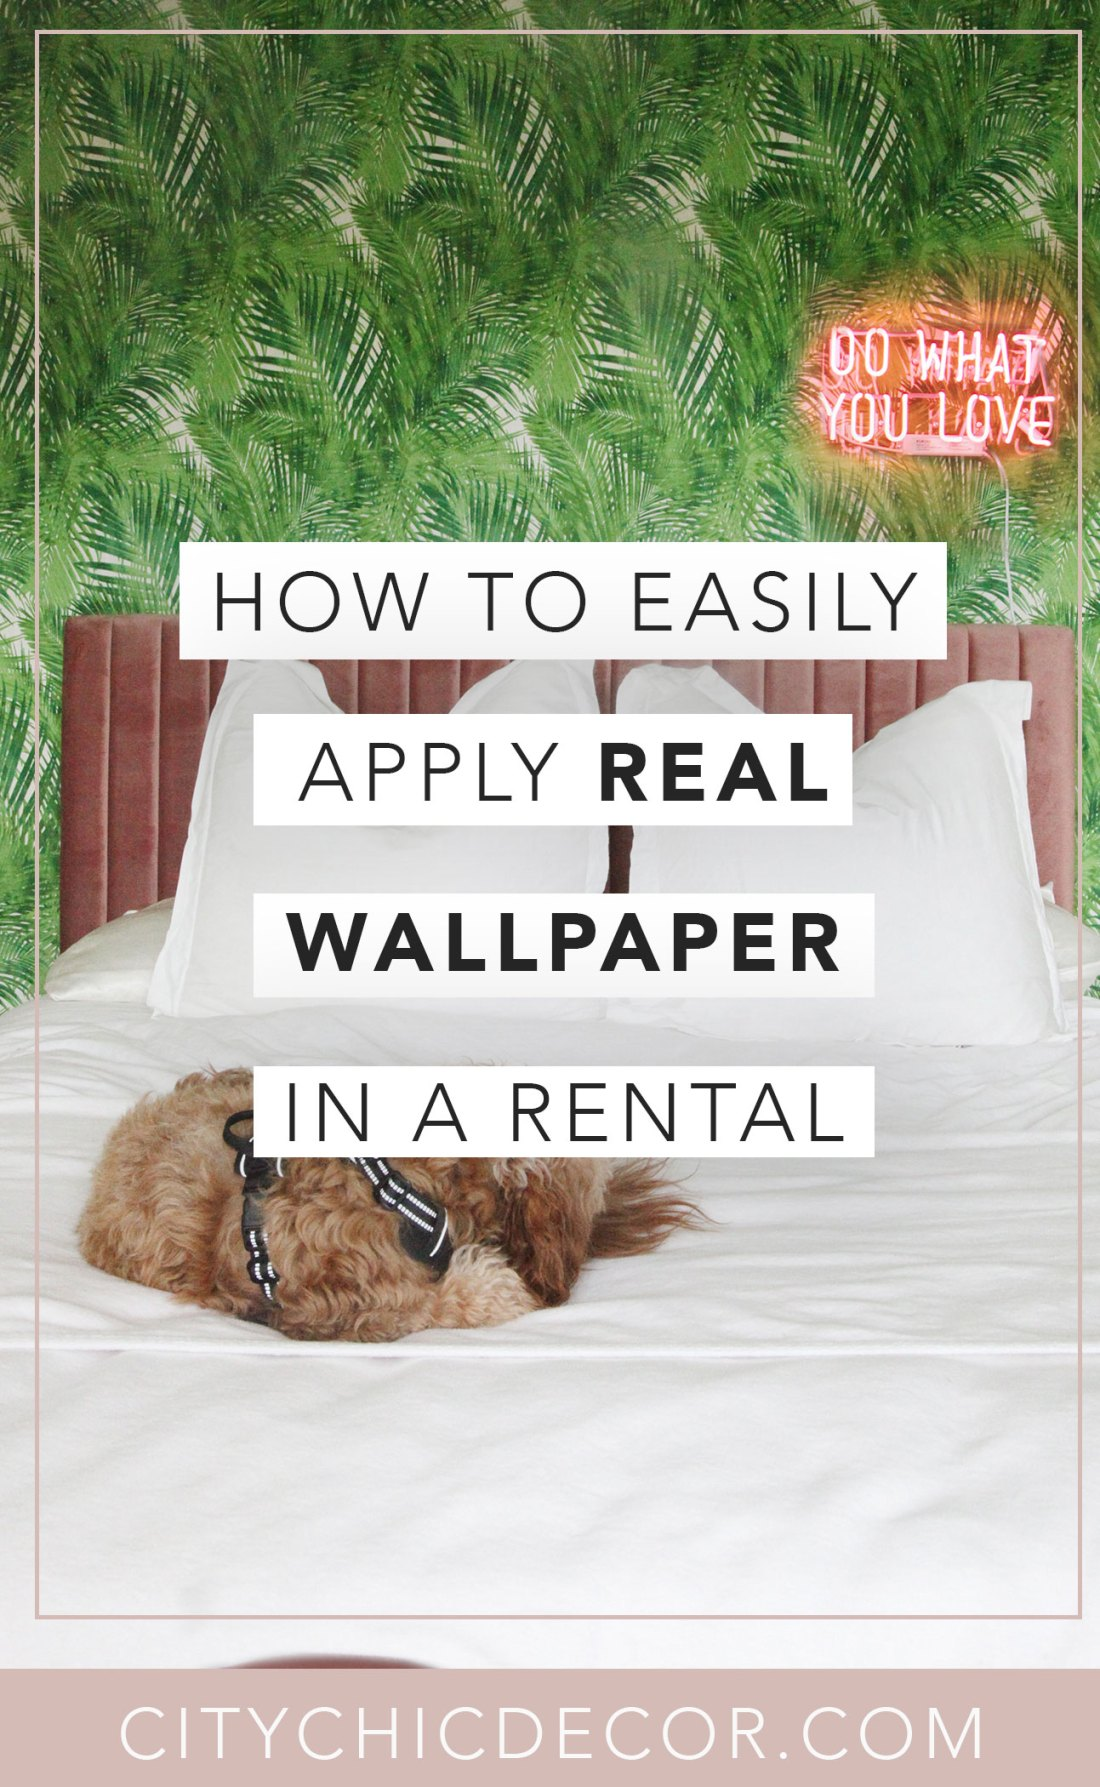 Want to know how to easily hang and install non pasted wallpaper? You can hang pre pasted wallpaper with NO damage in your home or rental apartment using liquid starch! No damage and it's super easy to install. You can even remove it upon moving out! #vintagewallpaper #removablewallpaper #tropicalwallpaper #blushtropical #prepastedwallpaper